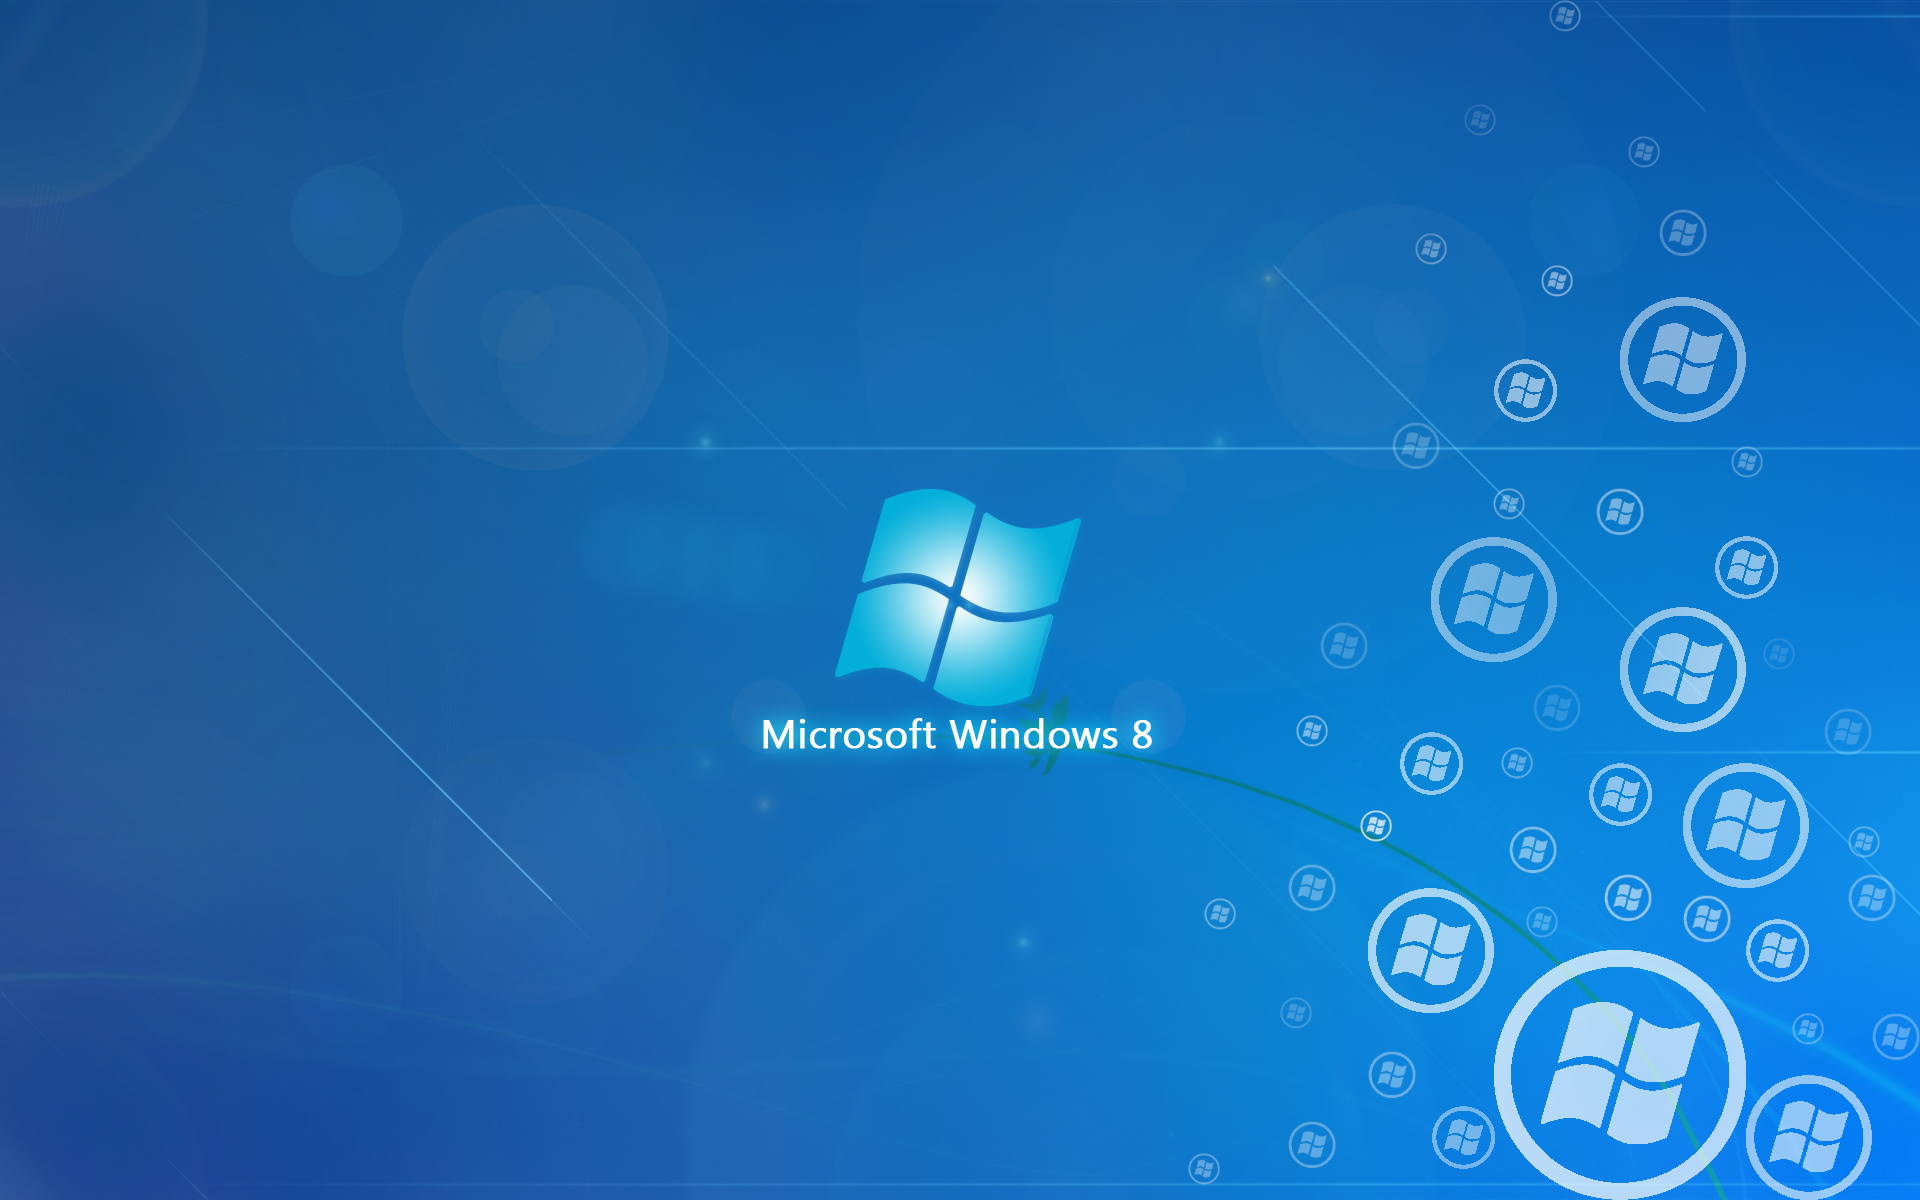 Download Microsoft Windows 8 Wallpapers Pack 1 - wallpapers - TechMynd